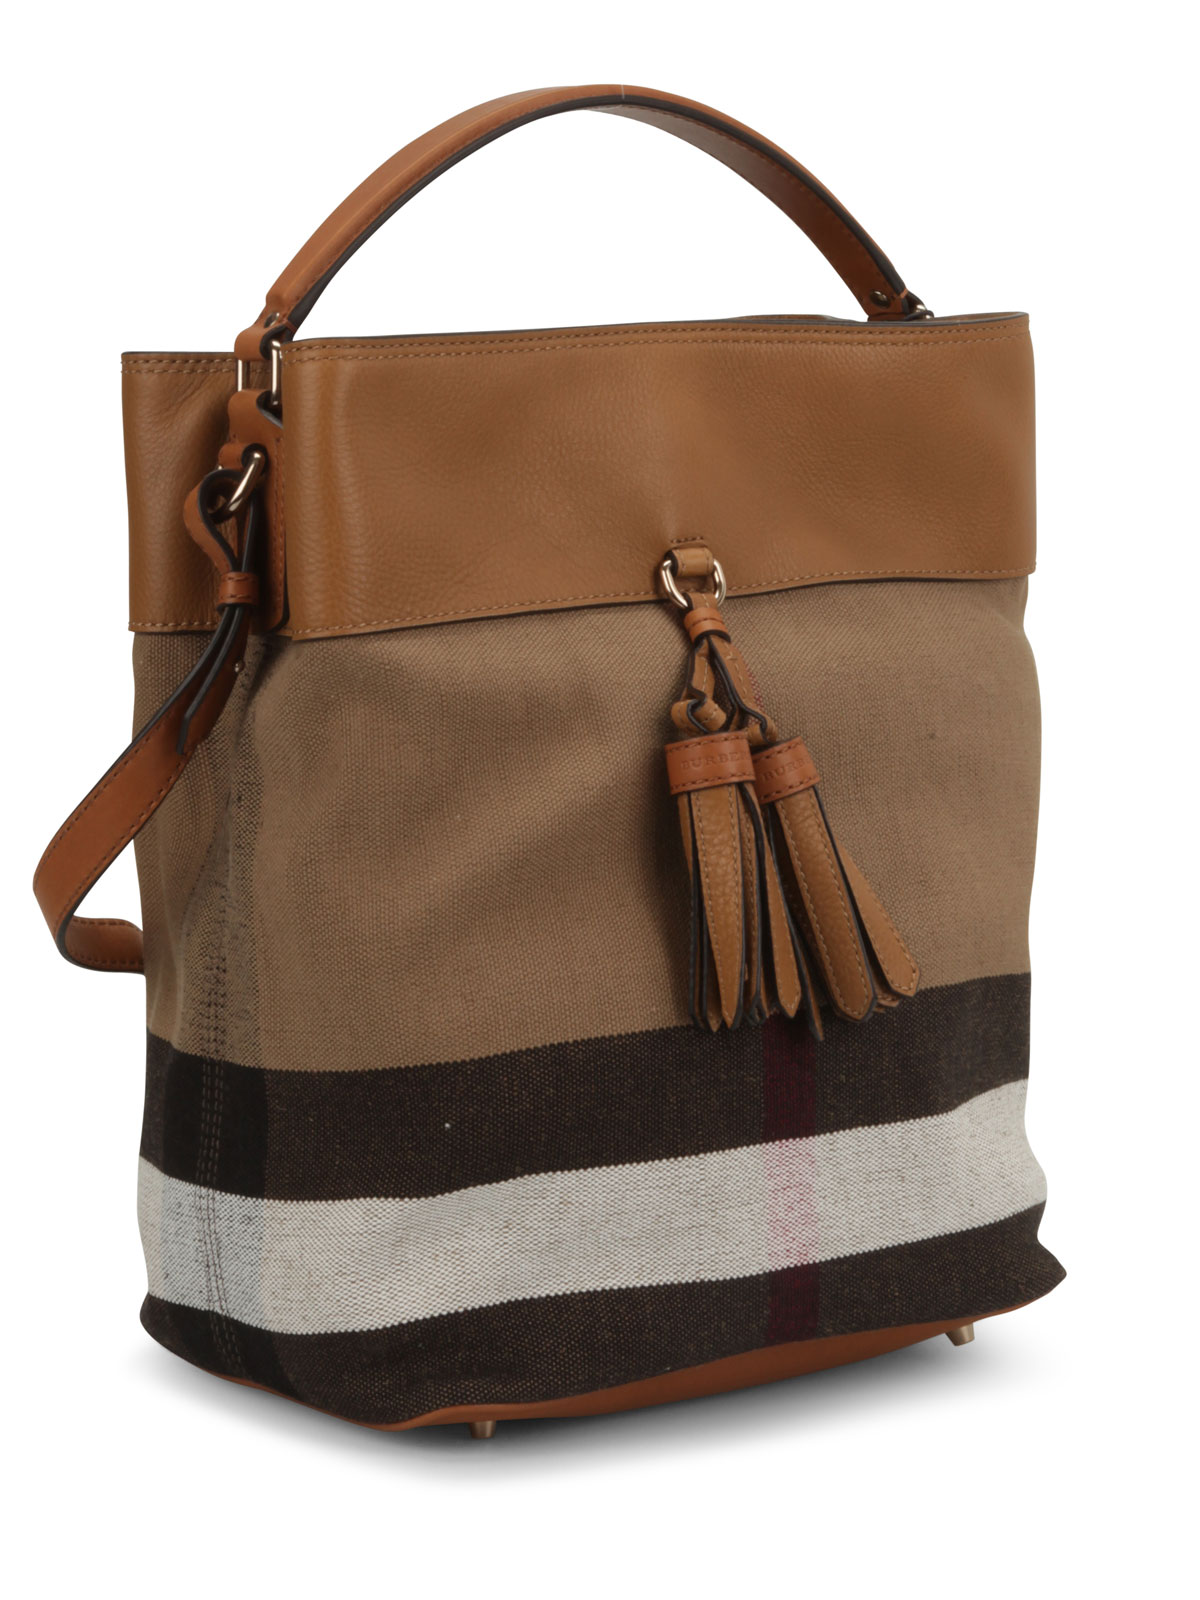 Susanna Canvas Check Hobo Bag By Burberry Shoulder Bags